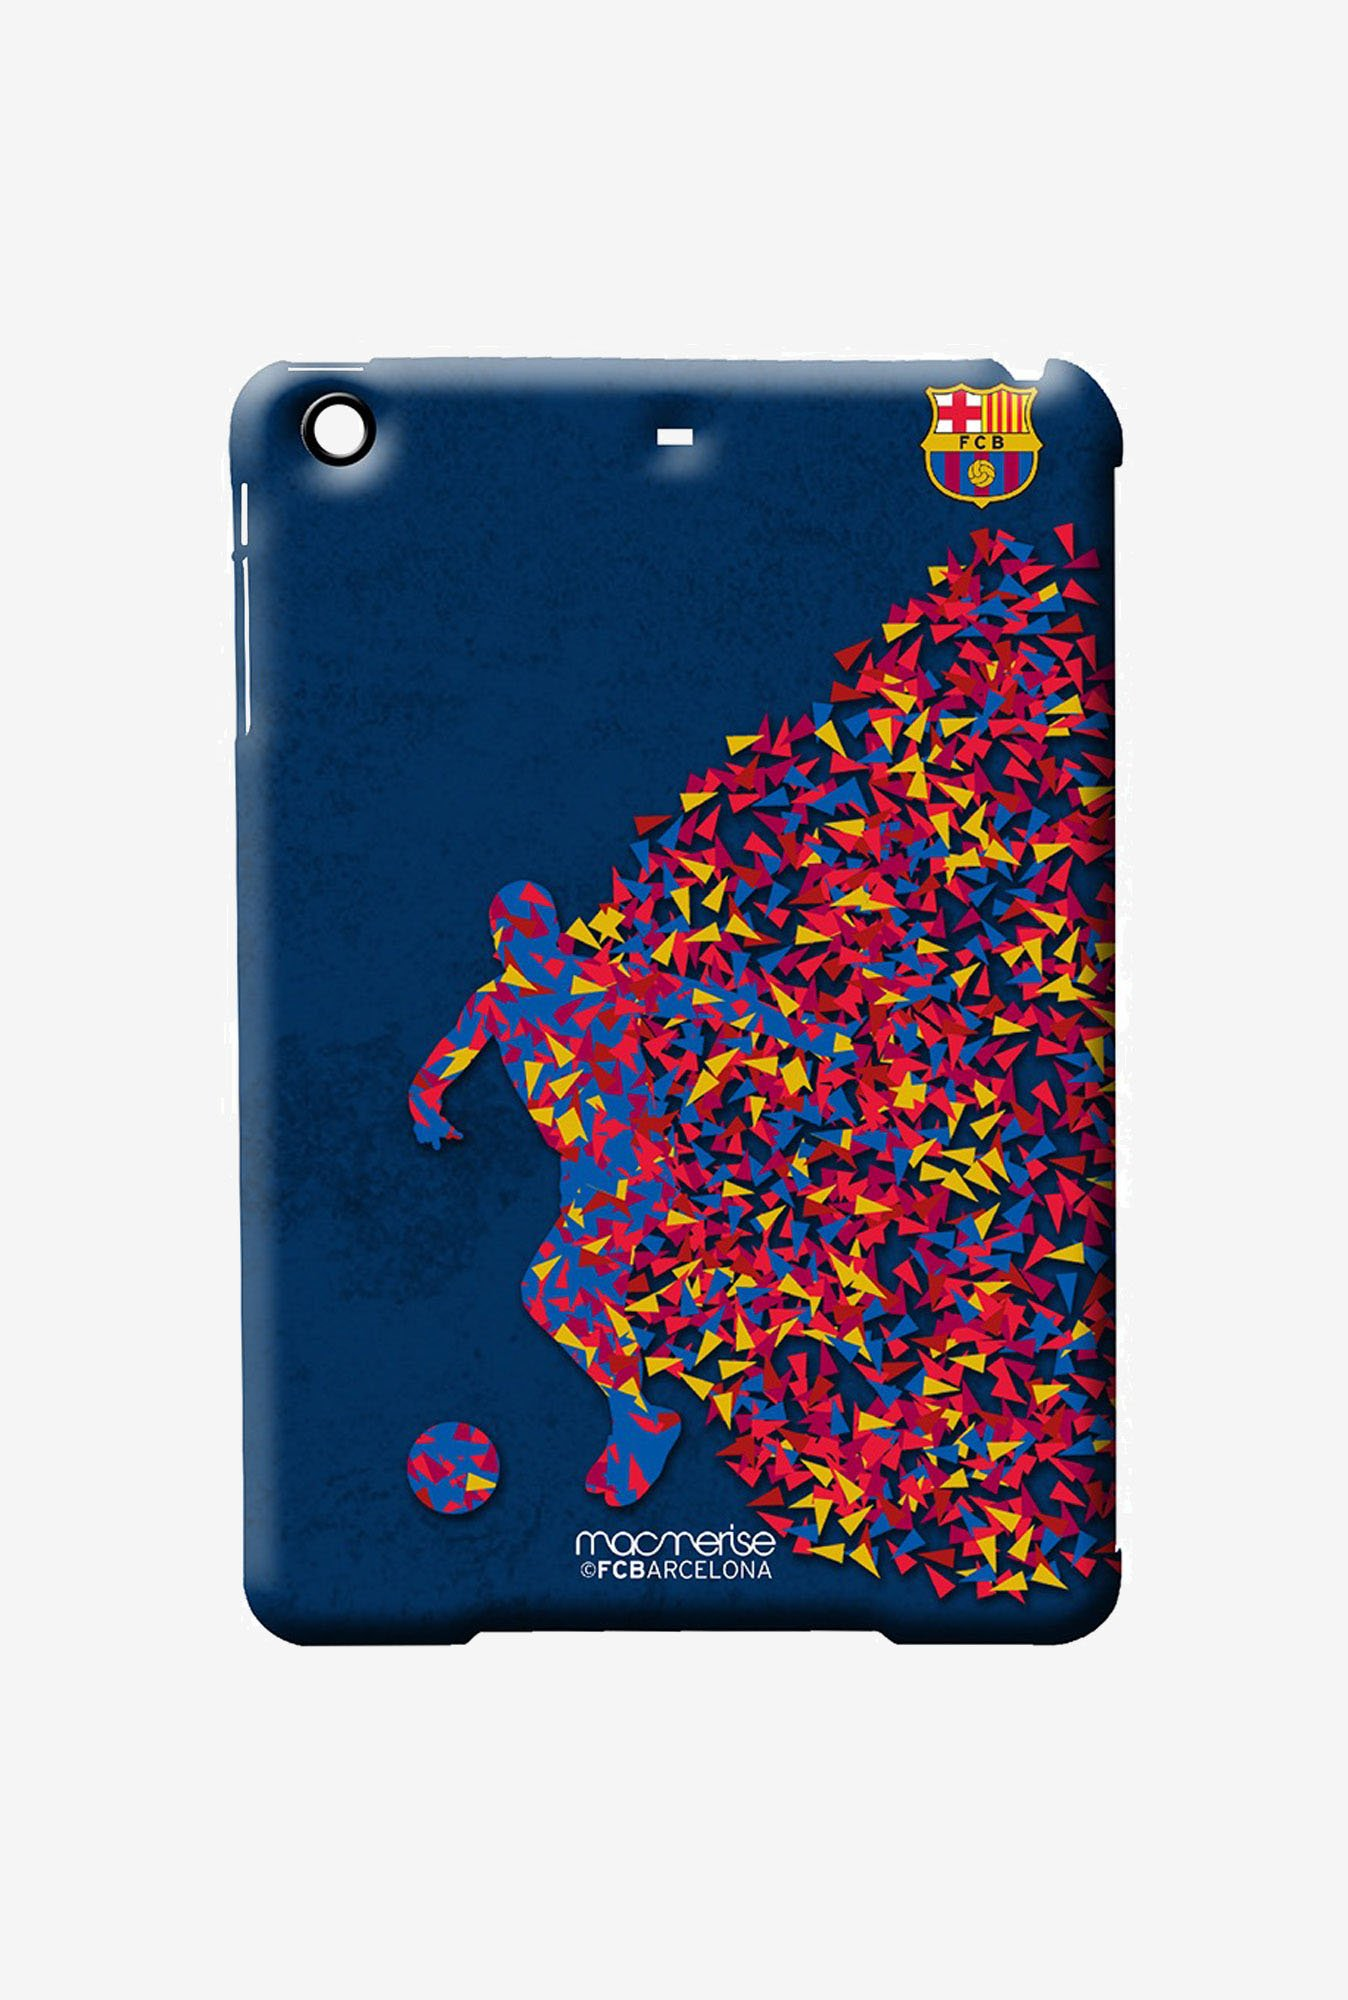 Macmerise FCB Asymmetrical Art Pro Case for iPad Mini 1/2/3